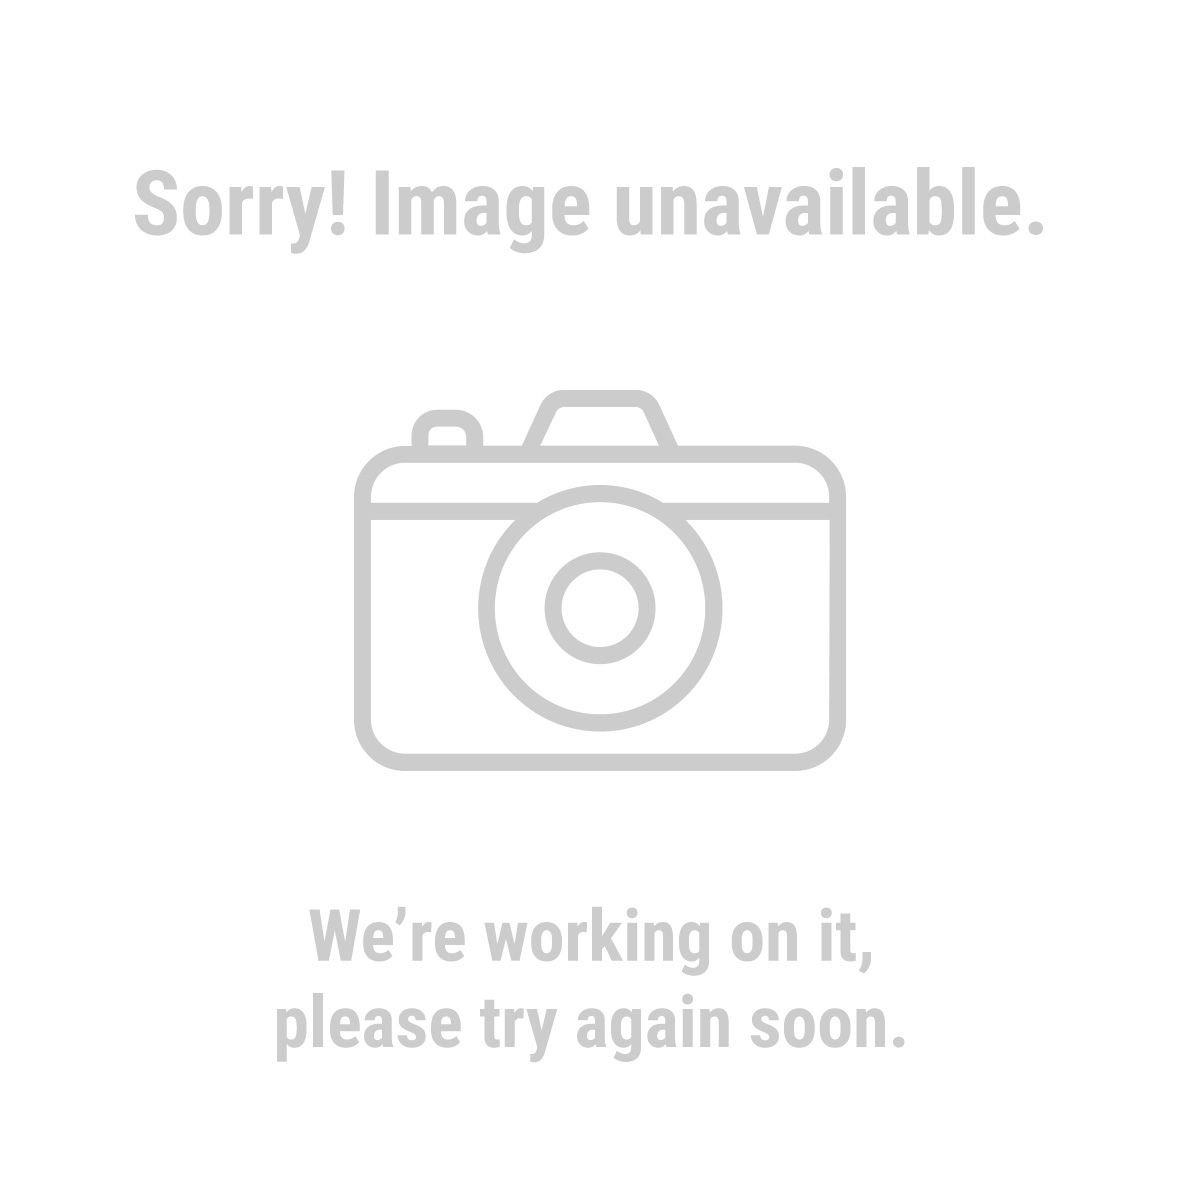 Central Pneumatic® 61454 2.5 Horsepower, 21 gal., 125 PSI Cast Iron Vertical Air Compressor